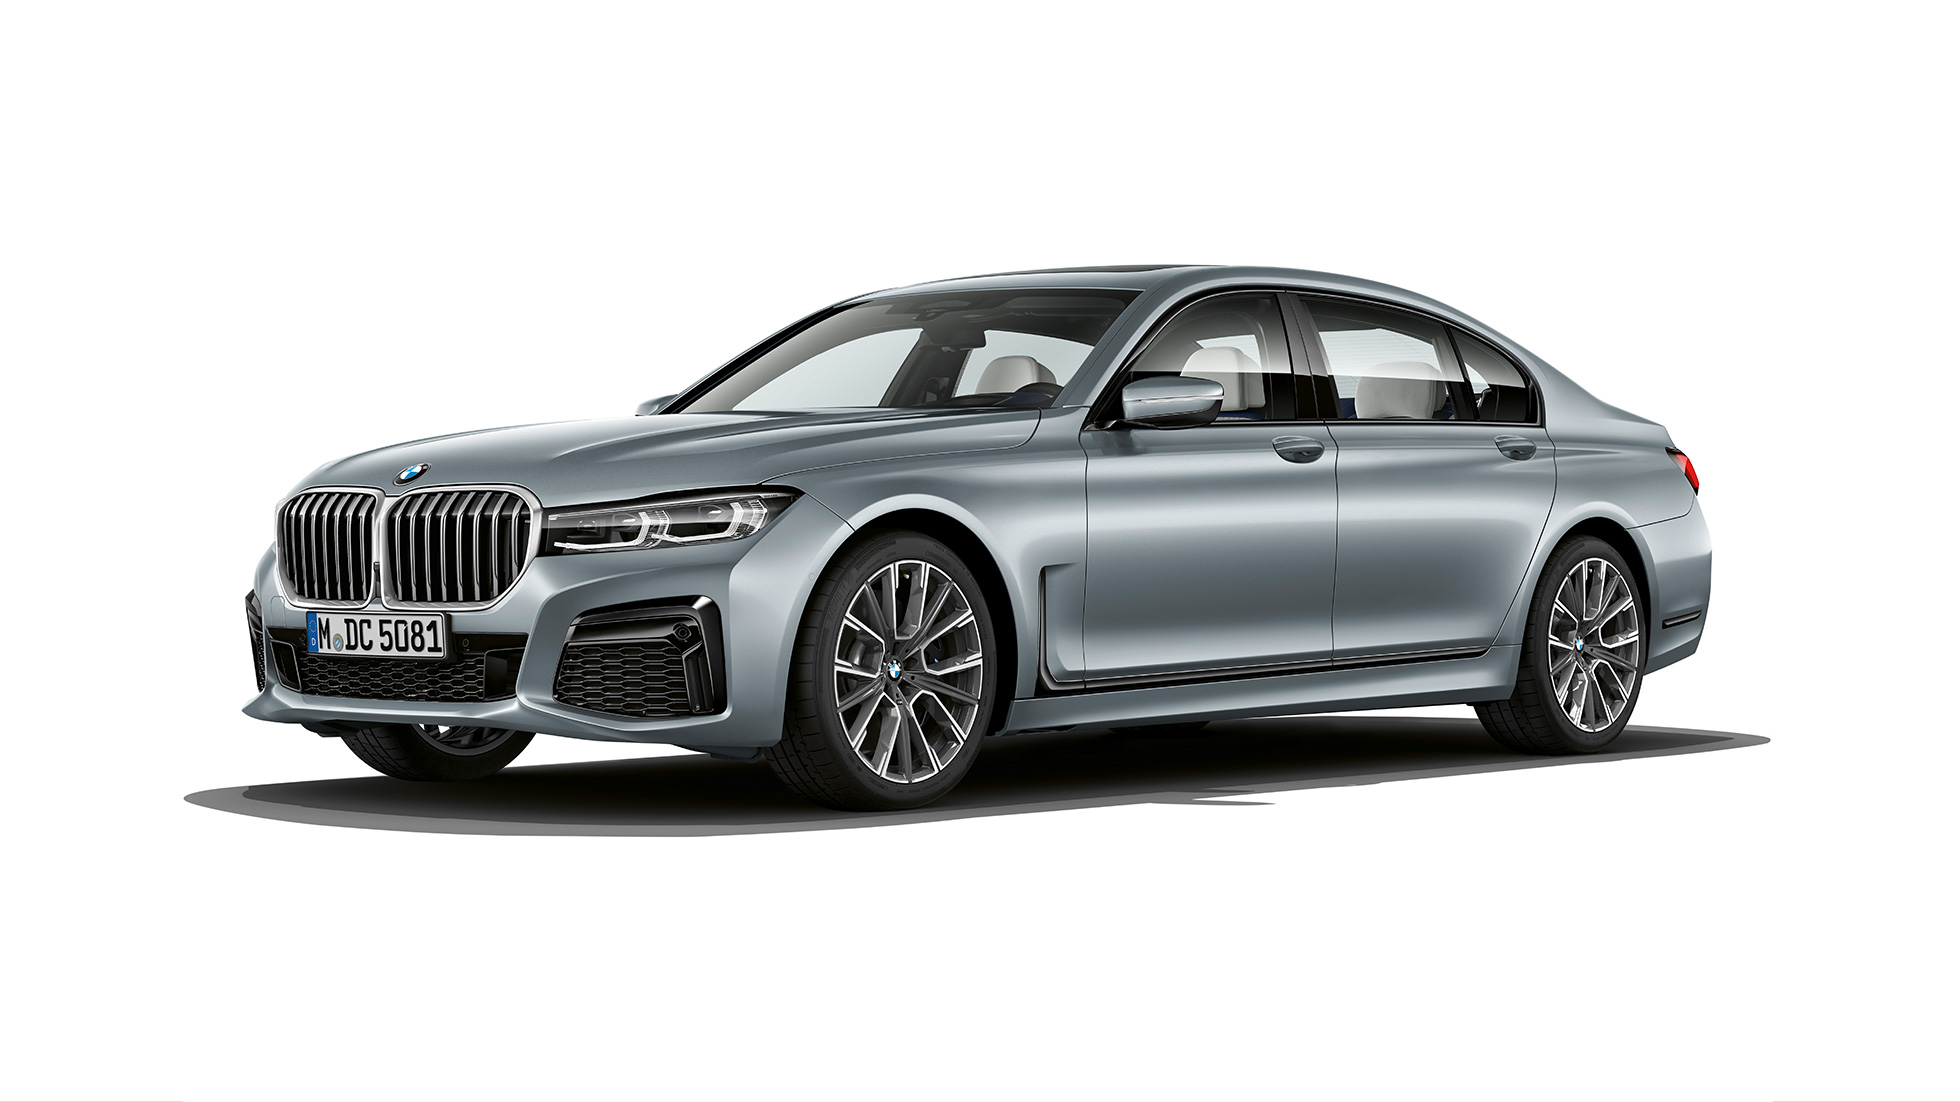 Grey BMW 7 Series Saloon M Sport package in three-quarter front view